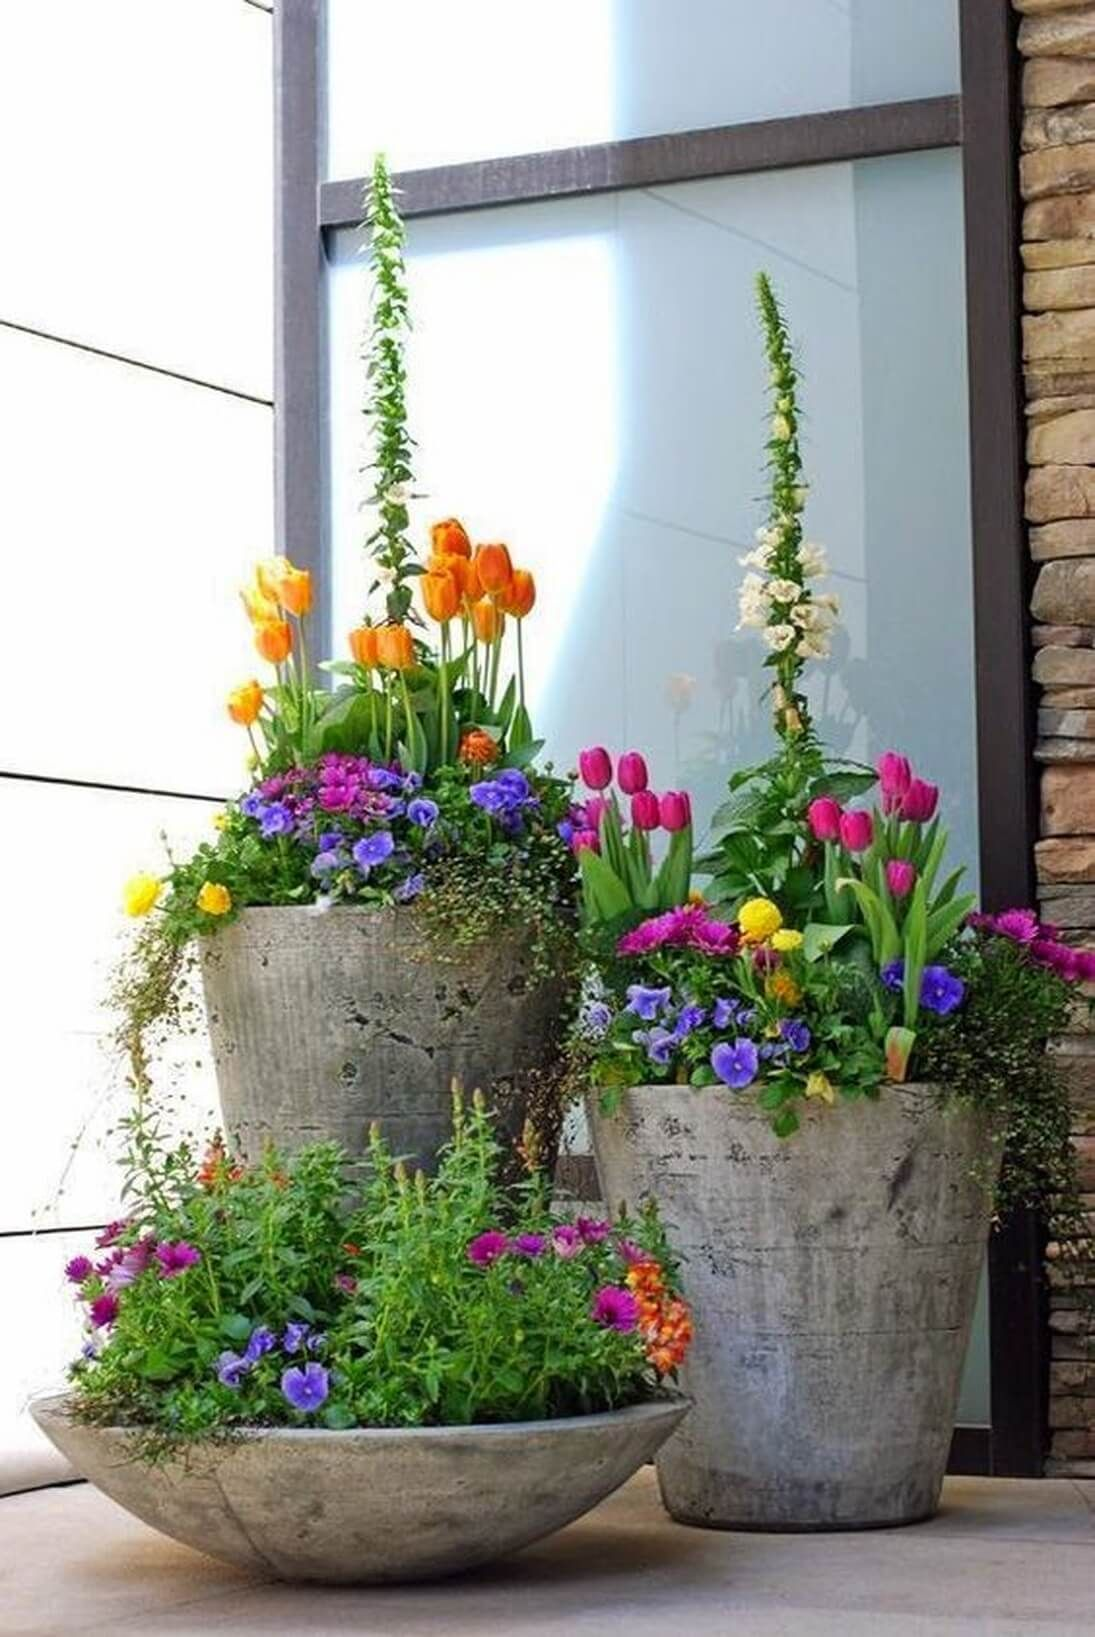 How To Make Beautiful Flower Pots At Home 29 Pretty Front Door Flower Pots That Will Add Personality